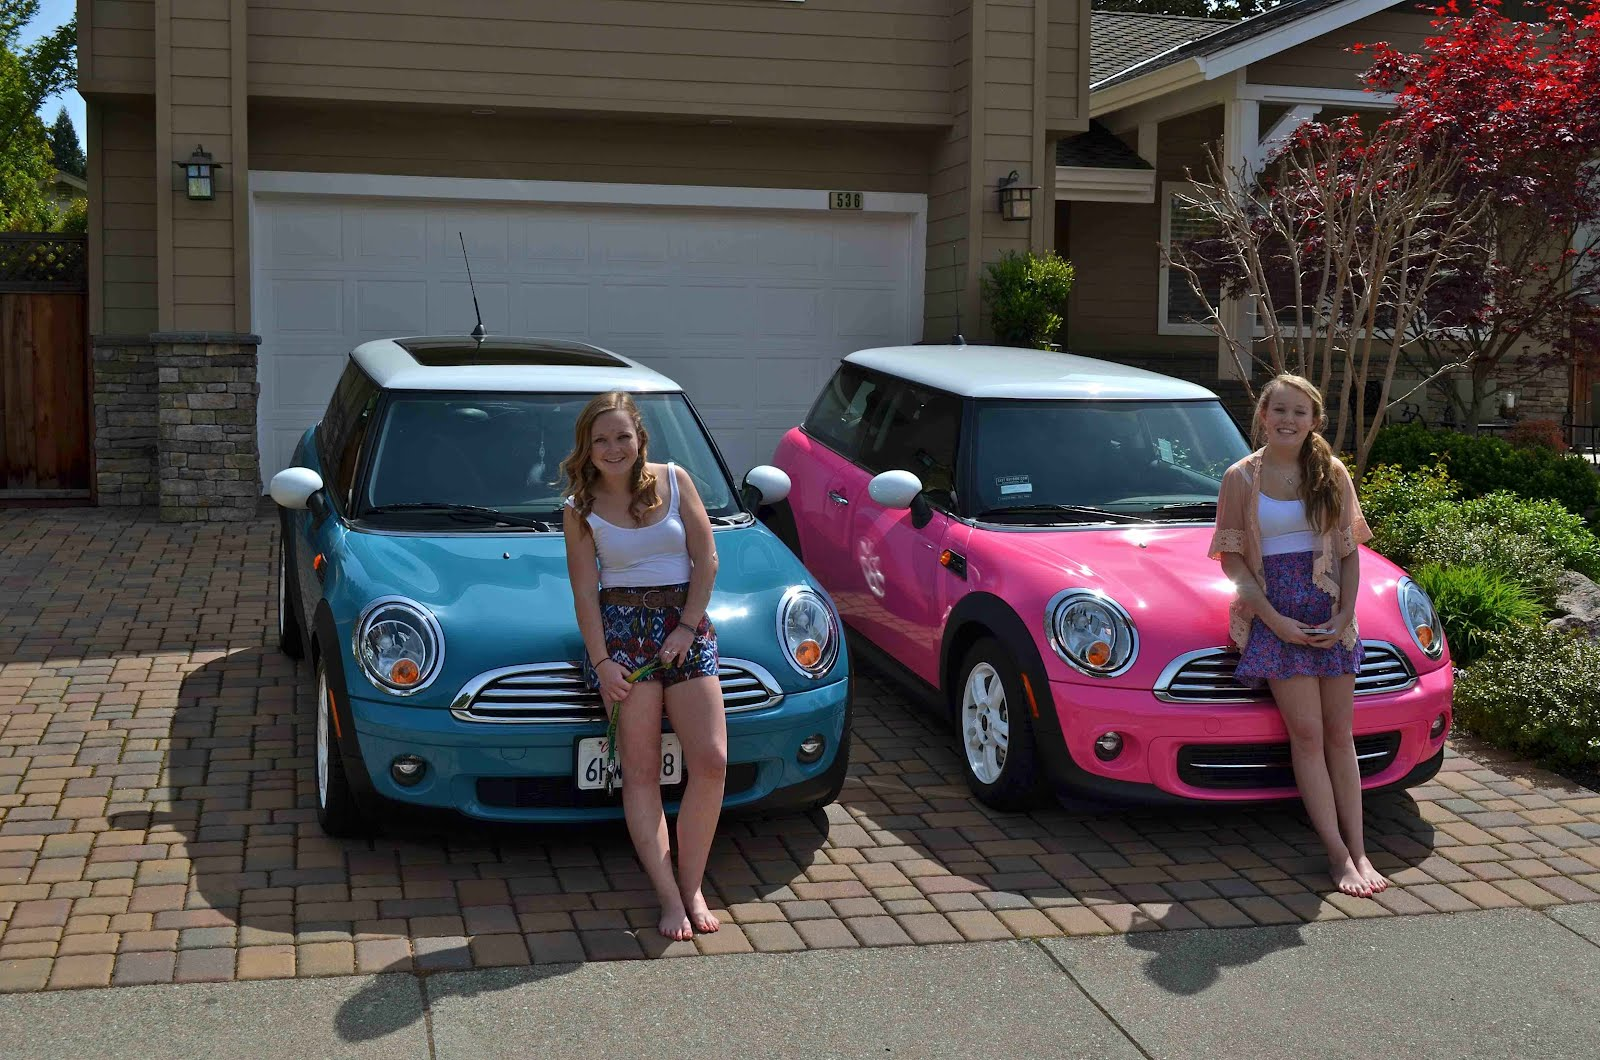 chrysler neon for sale html with Pink Mini Cooper Joins Garage on  furthermore Can in addition Lamborghini Logo further 32353891805 besides Scorpion Exo R2000.